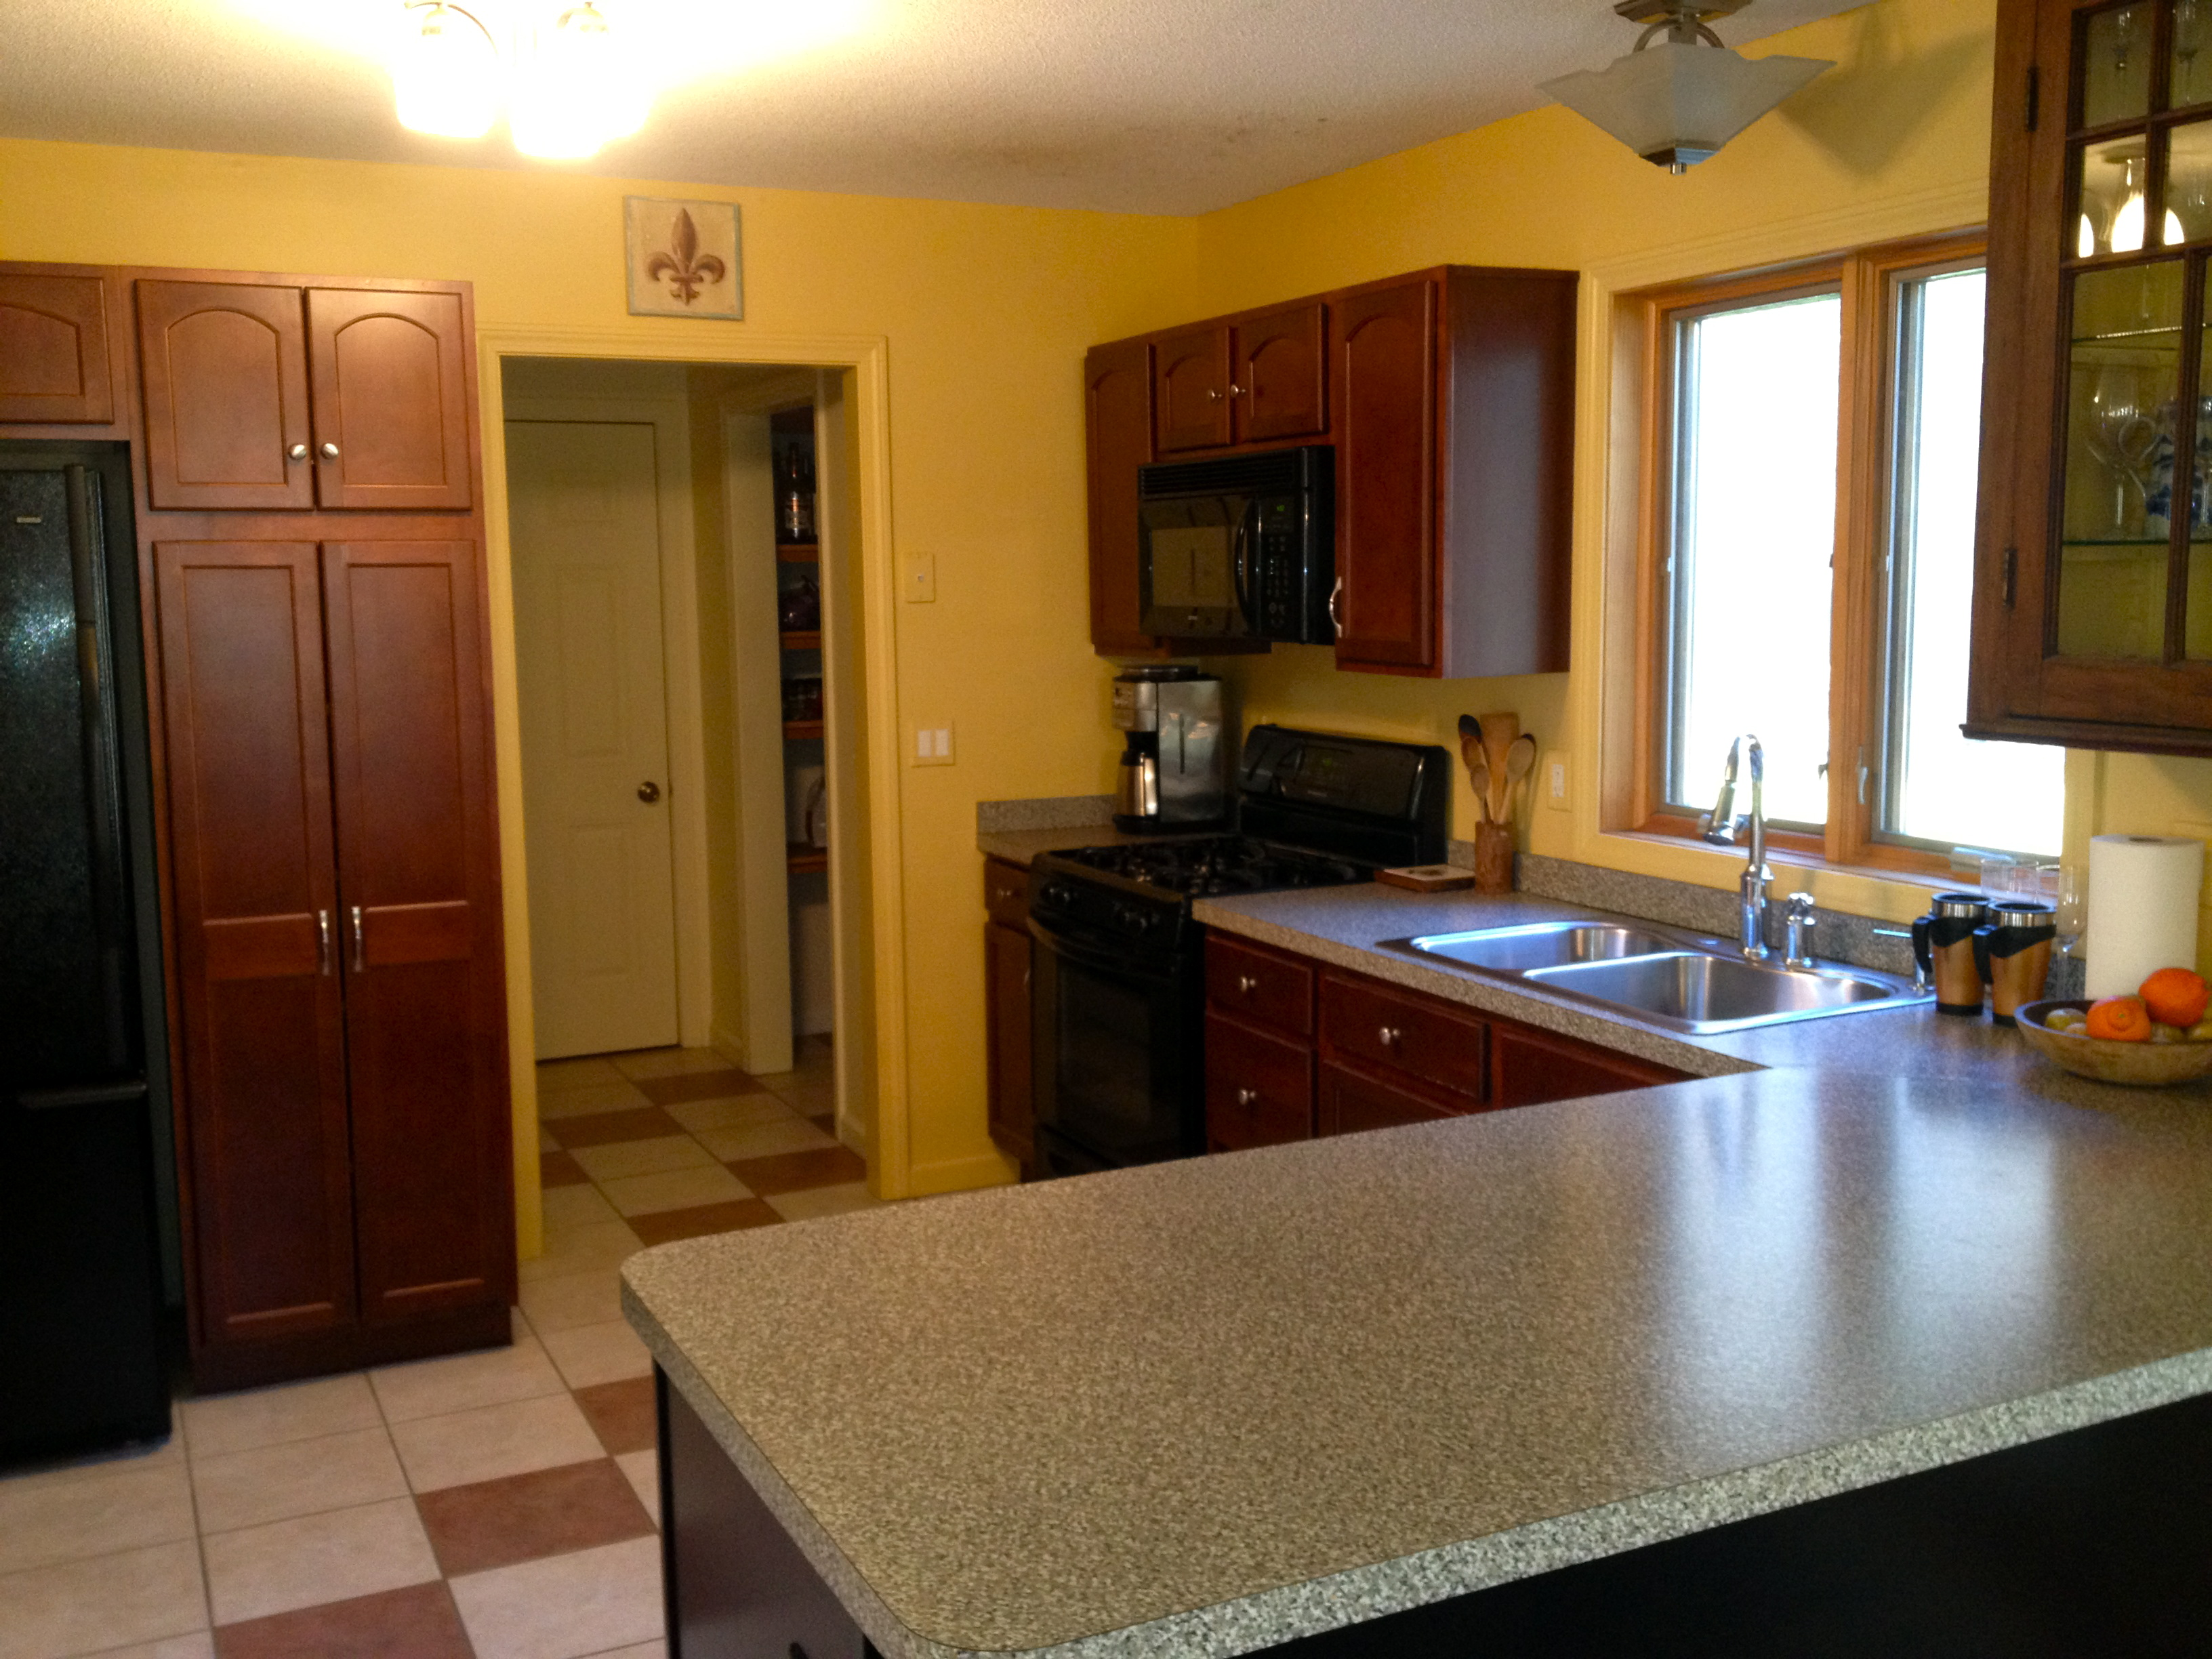 Case study western massachusetts bungalow kdz designs interior - Kitchen Before Photo